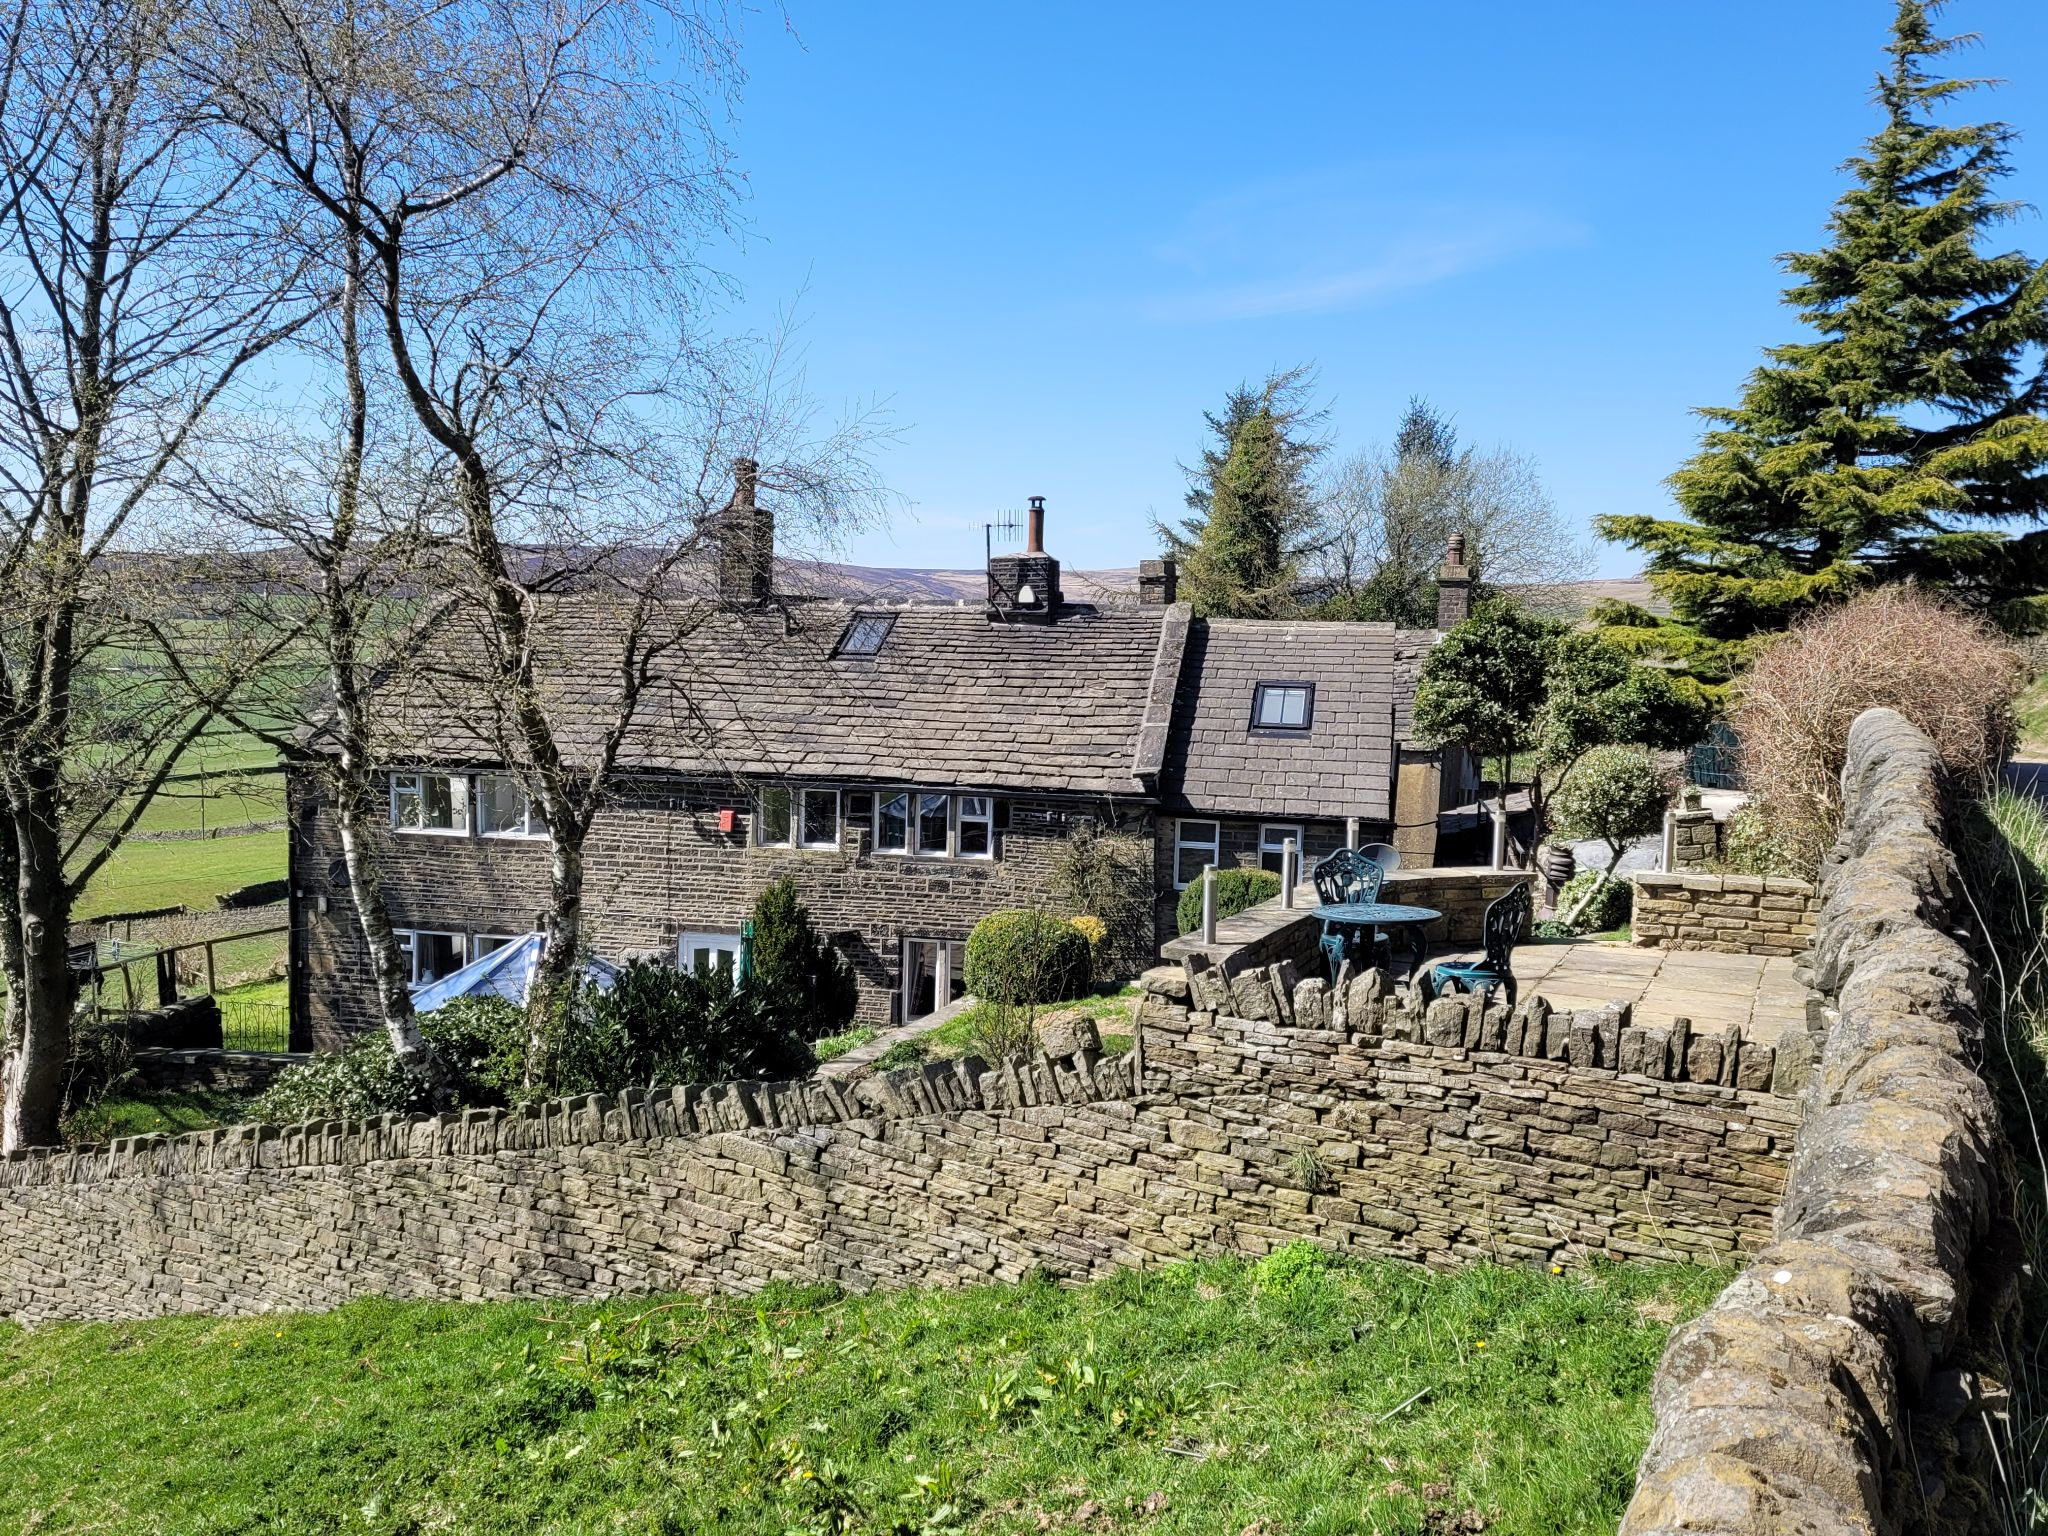 4 bedroom semi-detached house For Sale in Luddenden, Halifax - Photograph 1